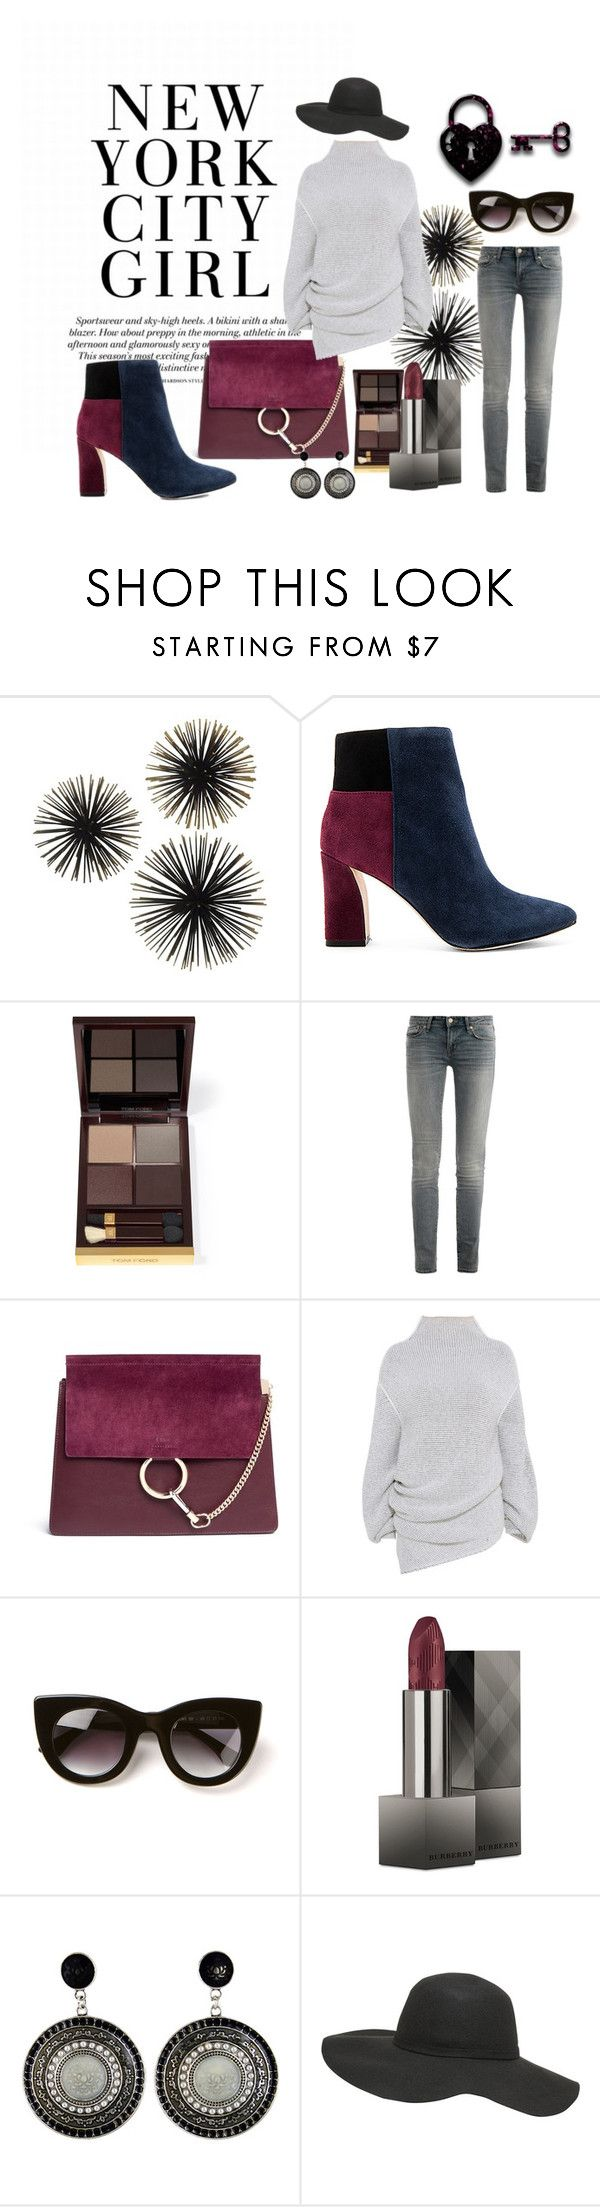 """""""Colored shoes"""" by elena88-88 ❤ liked on Polyvore featuring BCBGMAXAZRIA, Tom Ford, Marc by Marc Jacobs, Chloé, STELLA McCARTNEY, Thierry Lasry, Burberry, Dorothy Perkins, shoes and colored"""